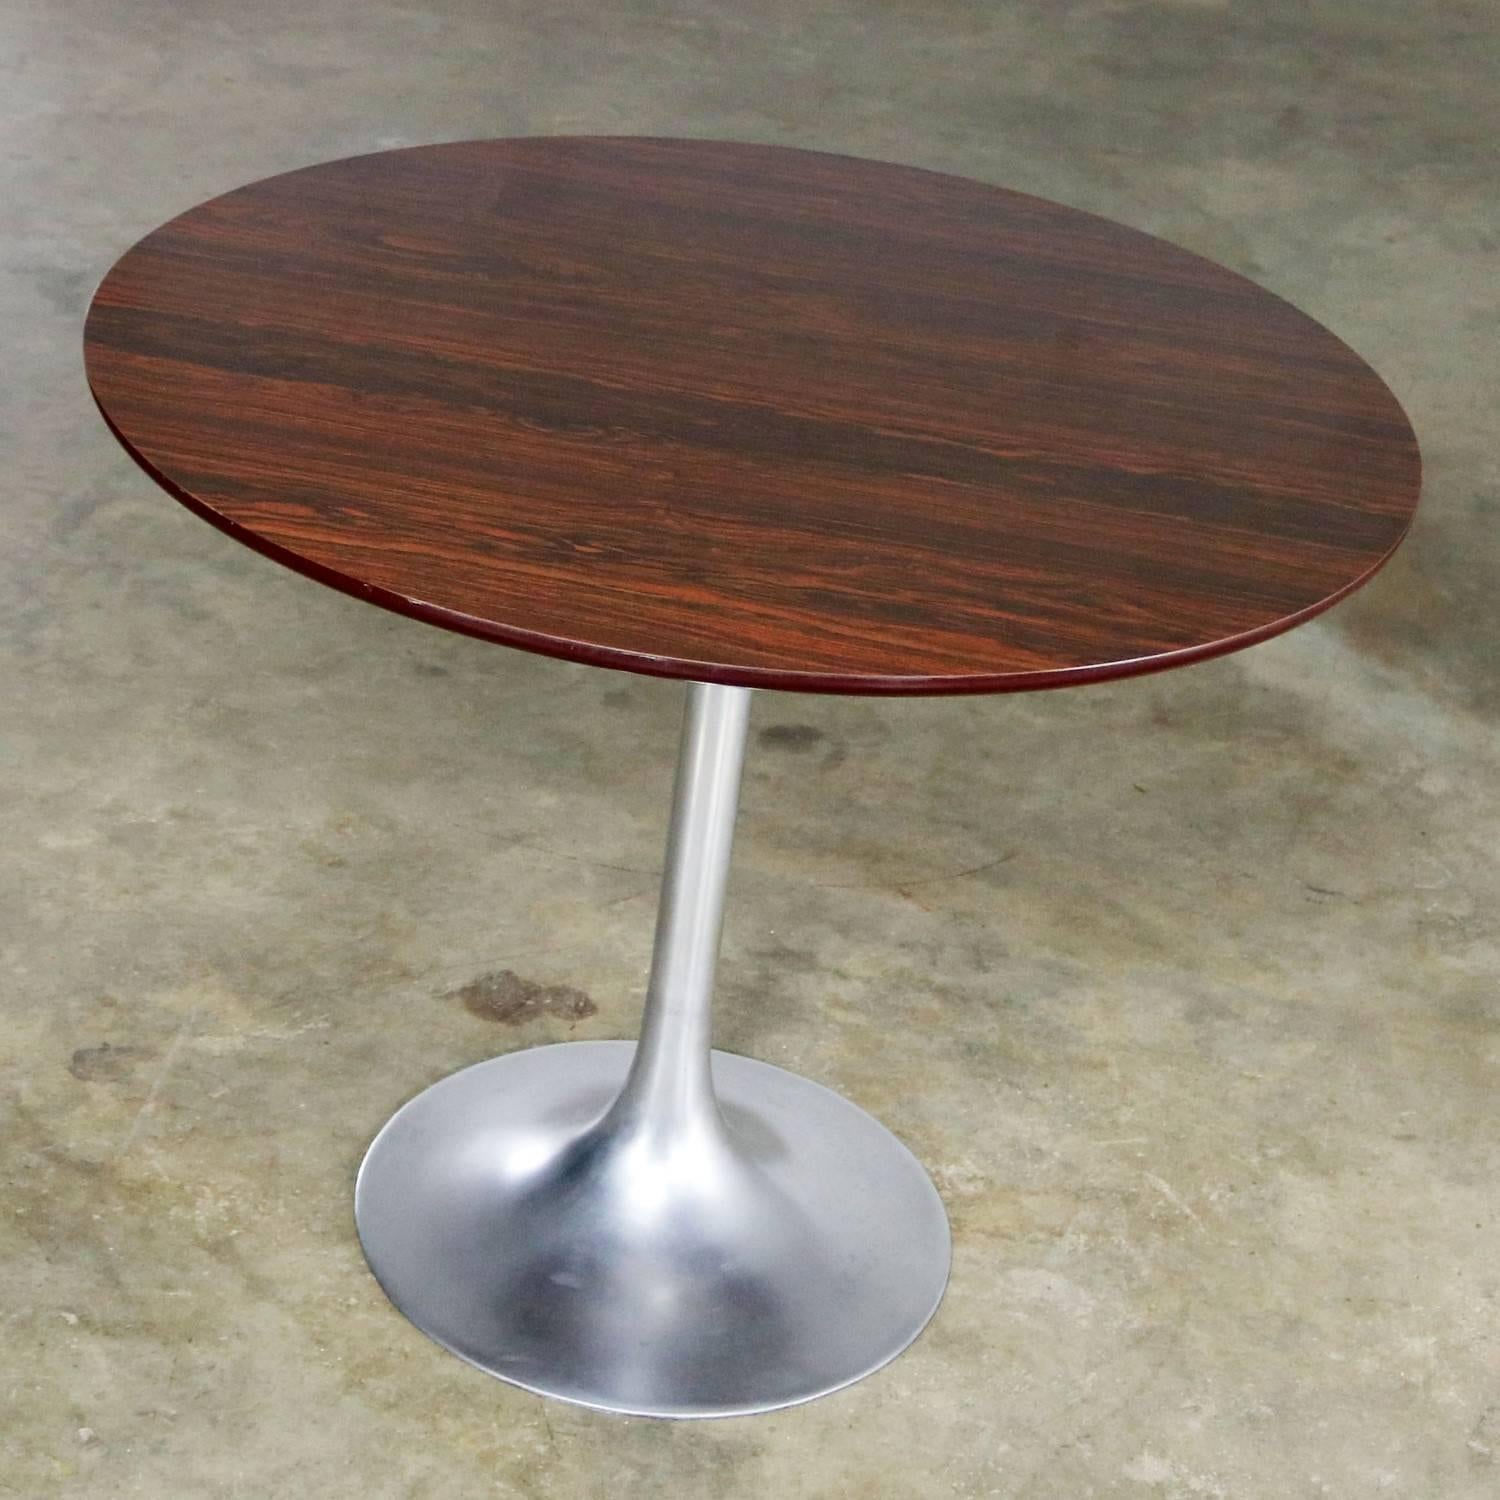 Merveilleux Classic Mid Century Modern Saarinen Style Tulip Table With Polished  Aluminum Base And Round Wood